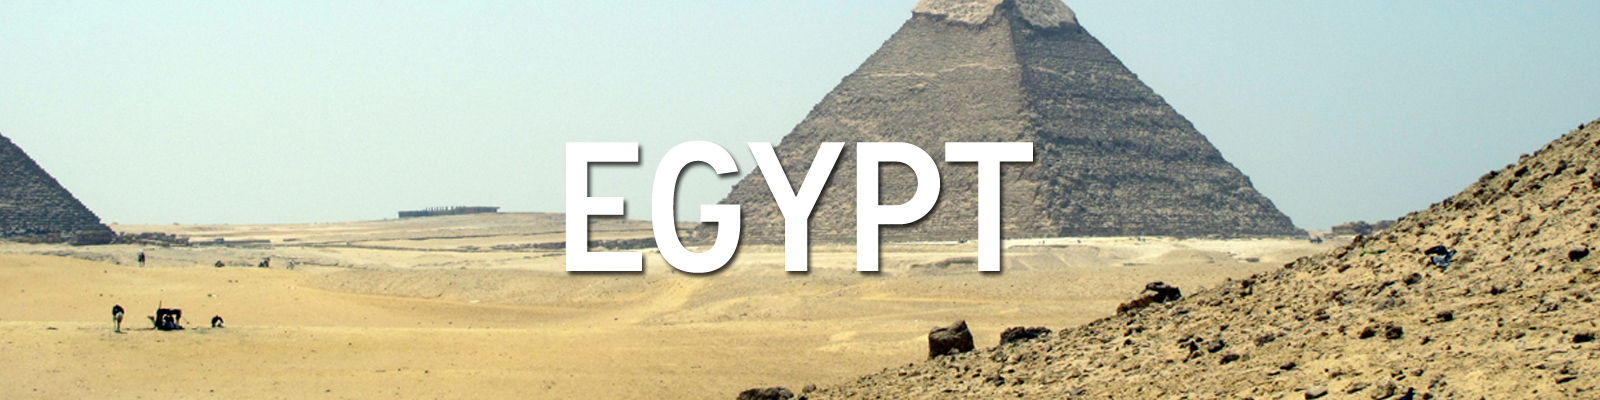 Egypt Travel